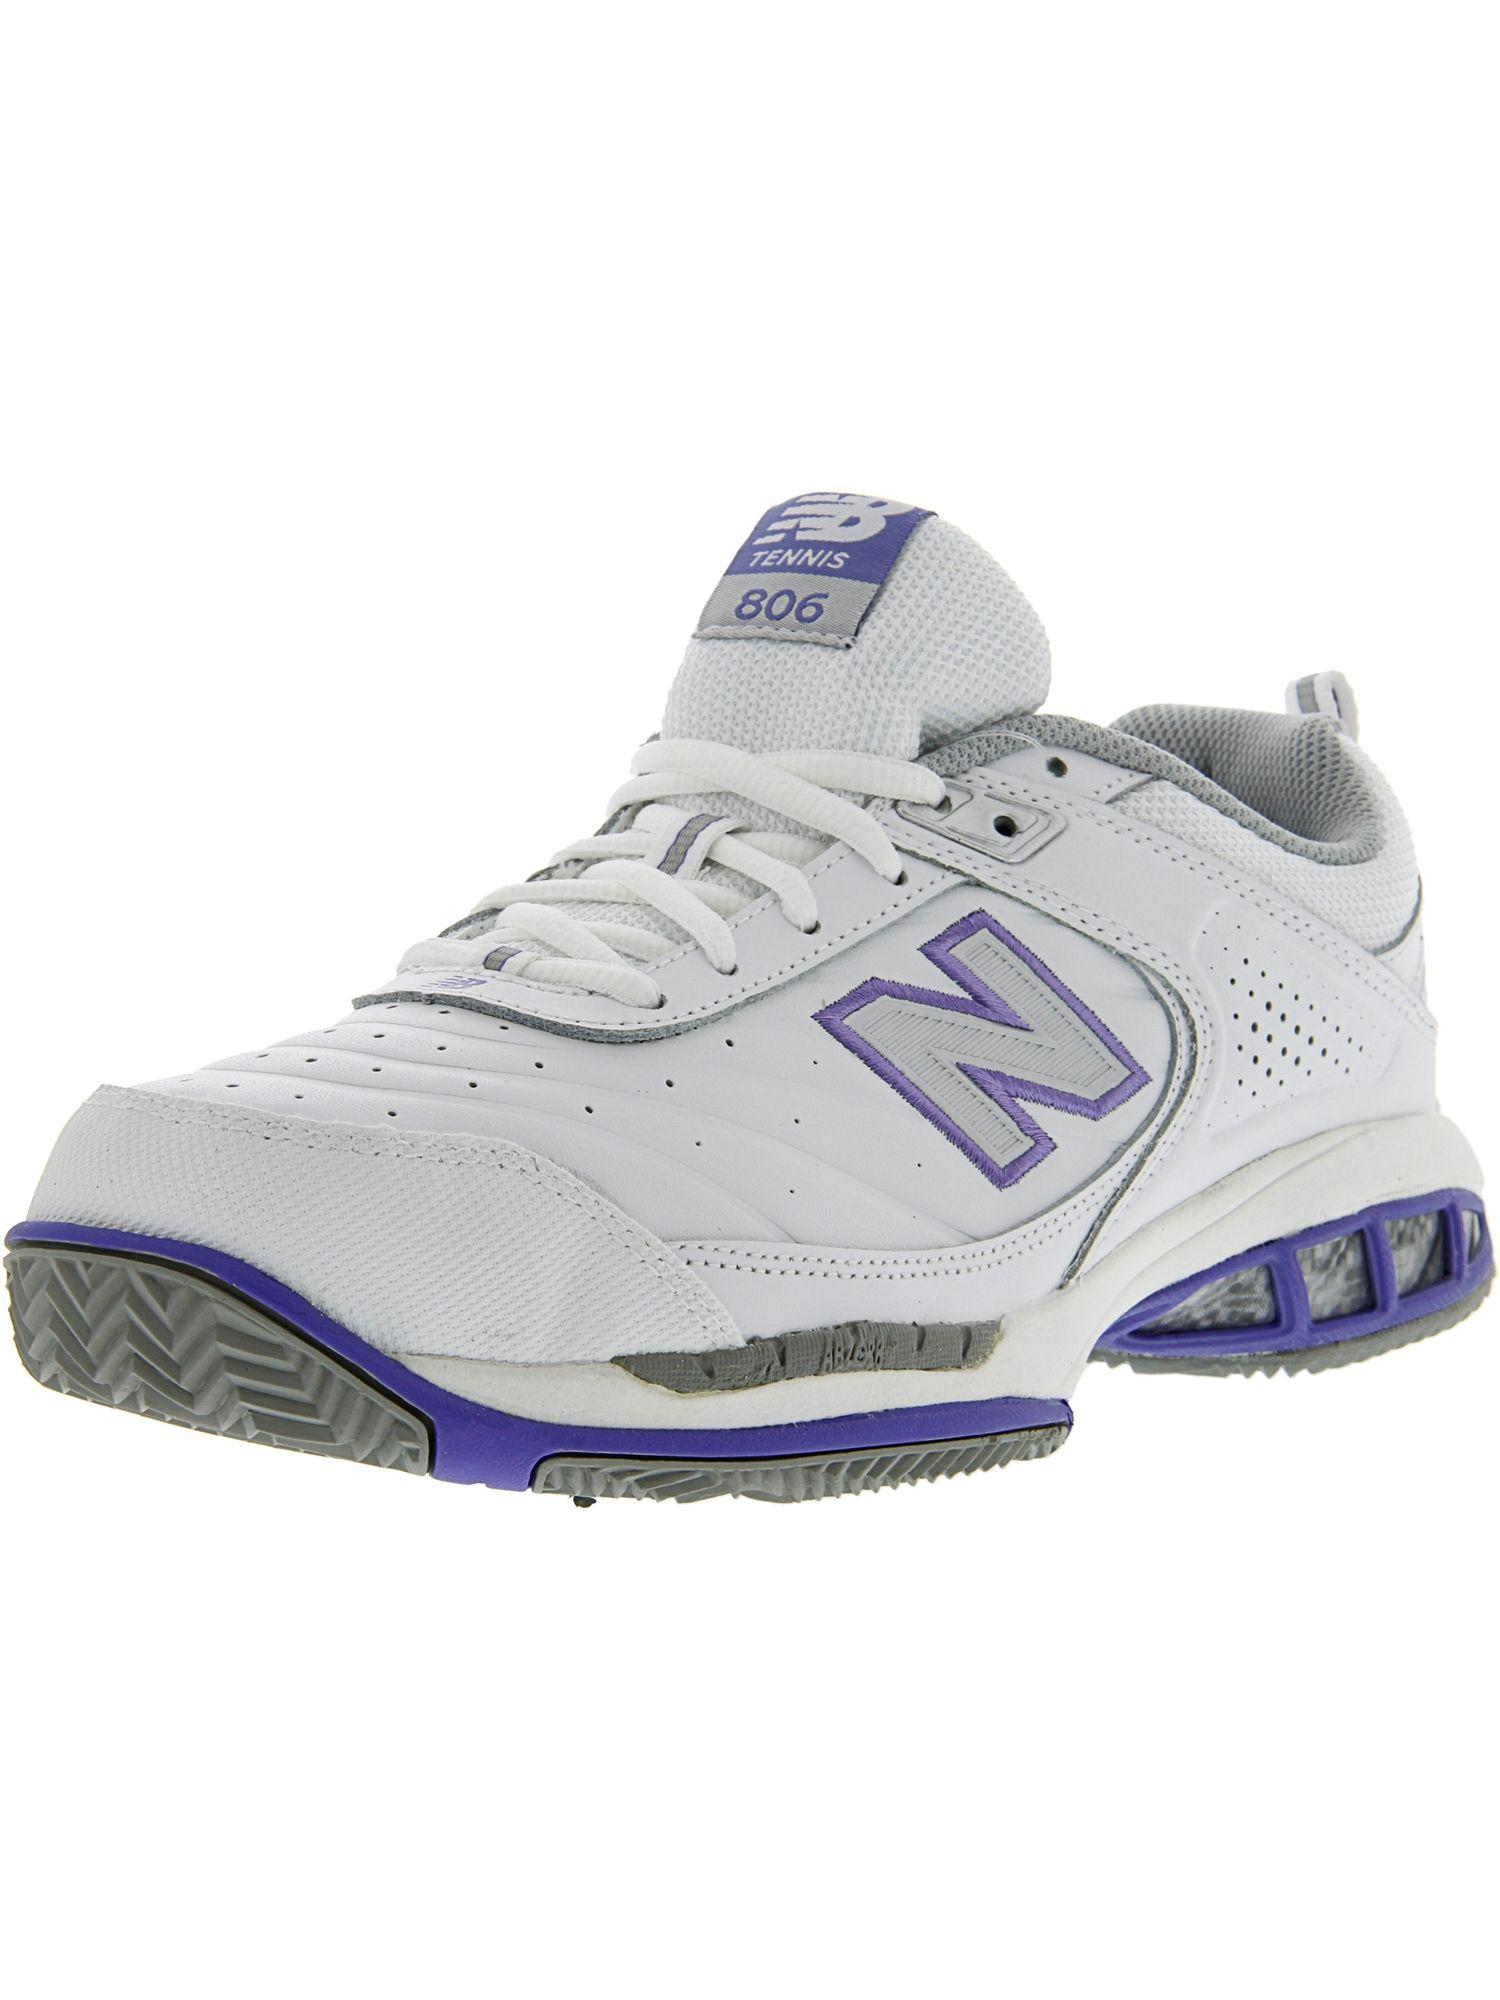 4bec7a683ccf1 Lyst - New Balance Women's C806 Ankle-high Tennis Shoe in White